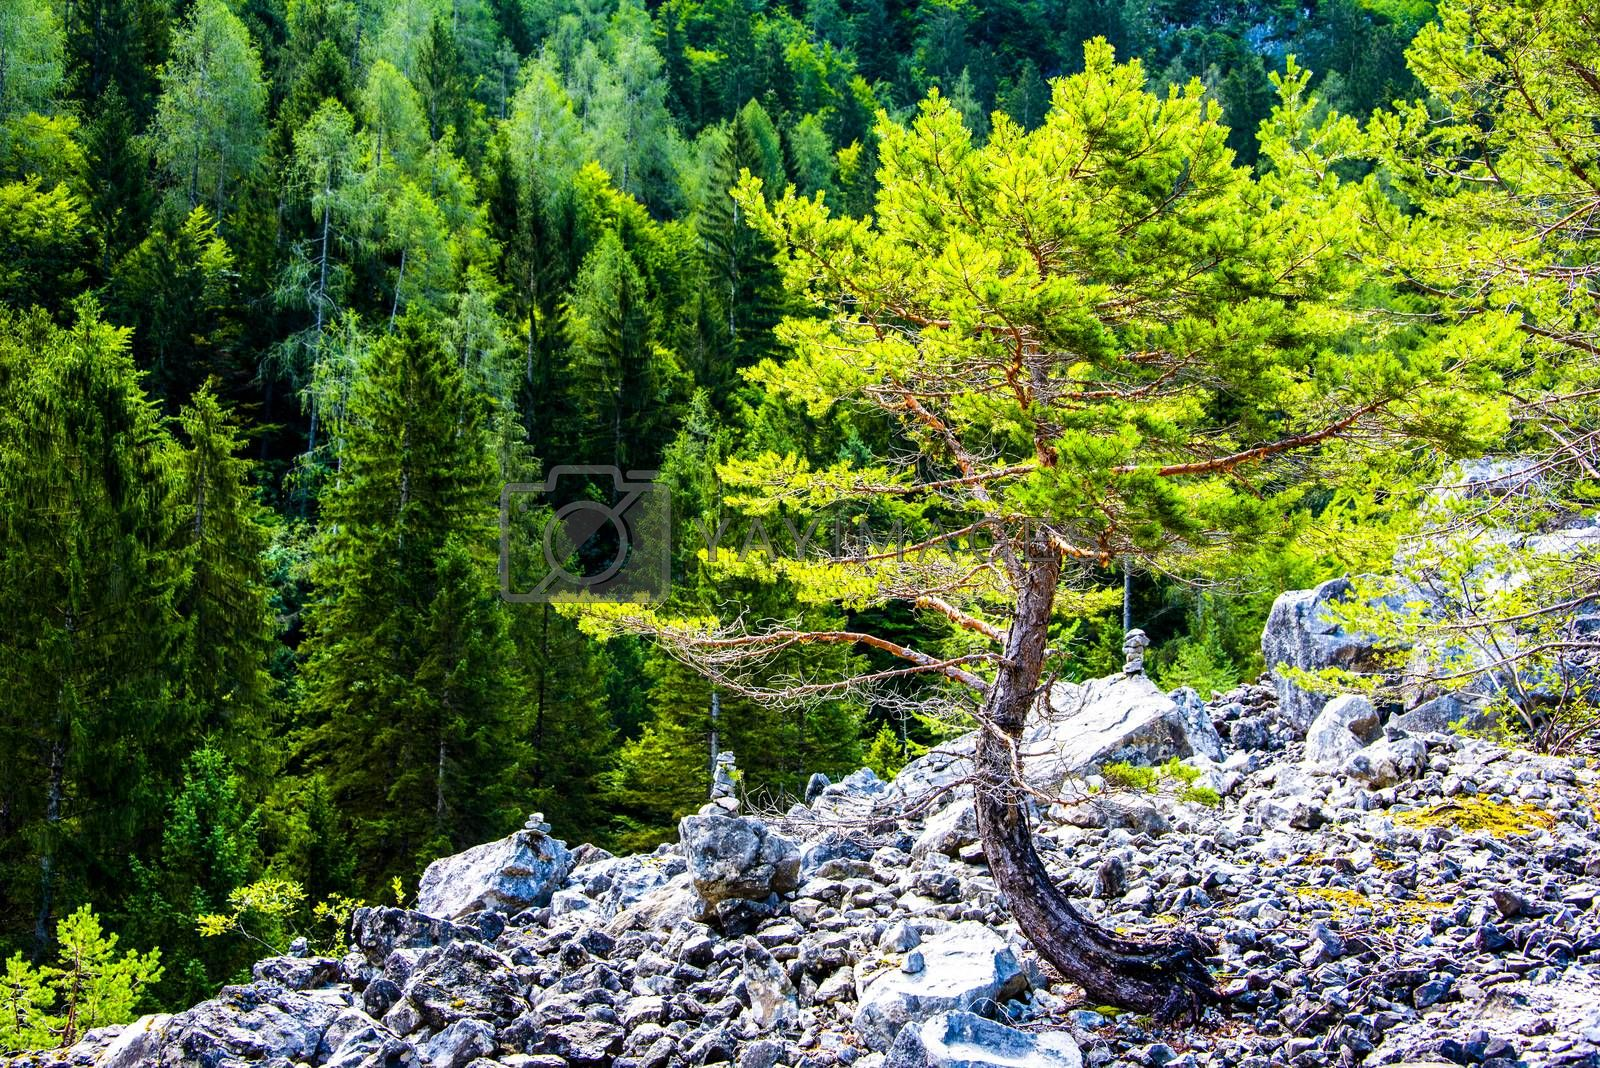 a tree curved towards Lake Tovel in the Adamello Natural Park in Val Di Non, Trento, Italy